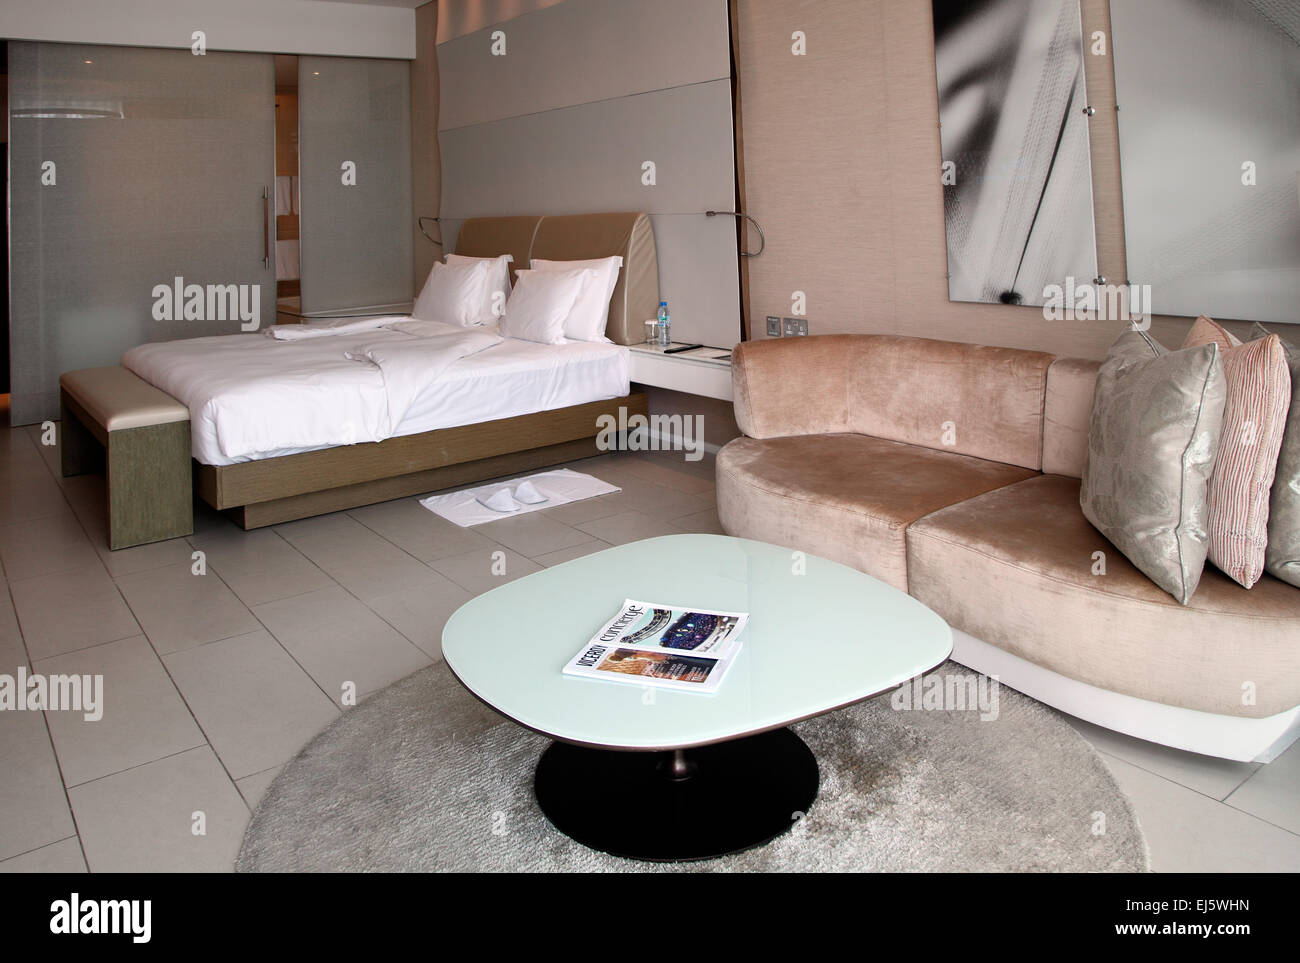 Room 1629 in the Yas Viceroy Hotel, Abu Dhabi. - Stock Image